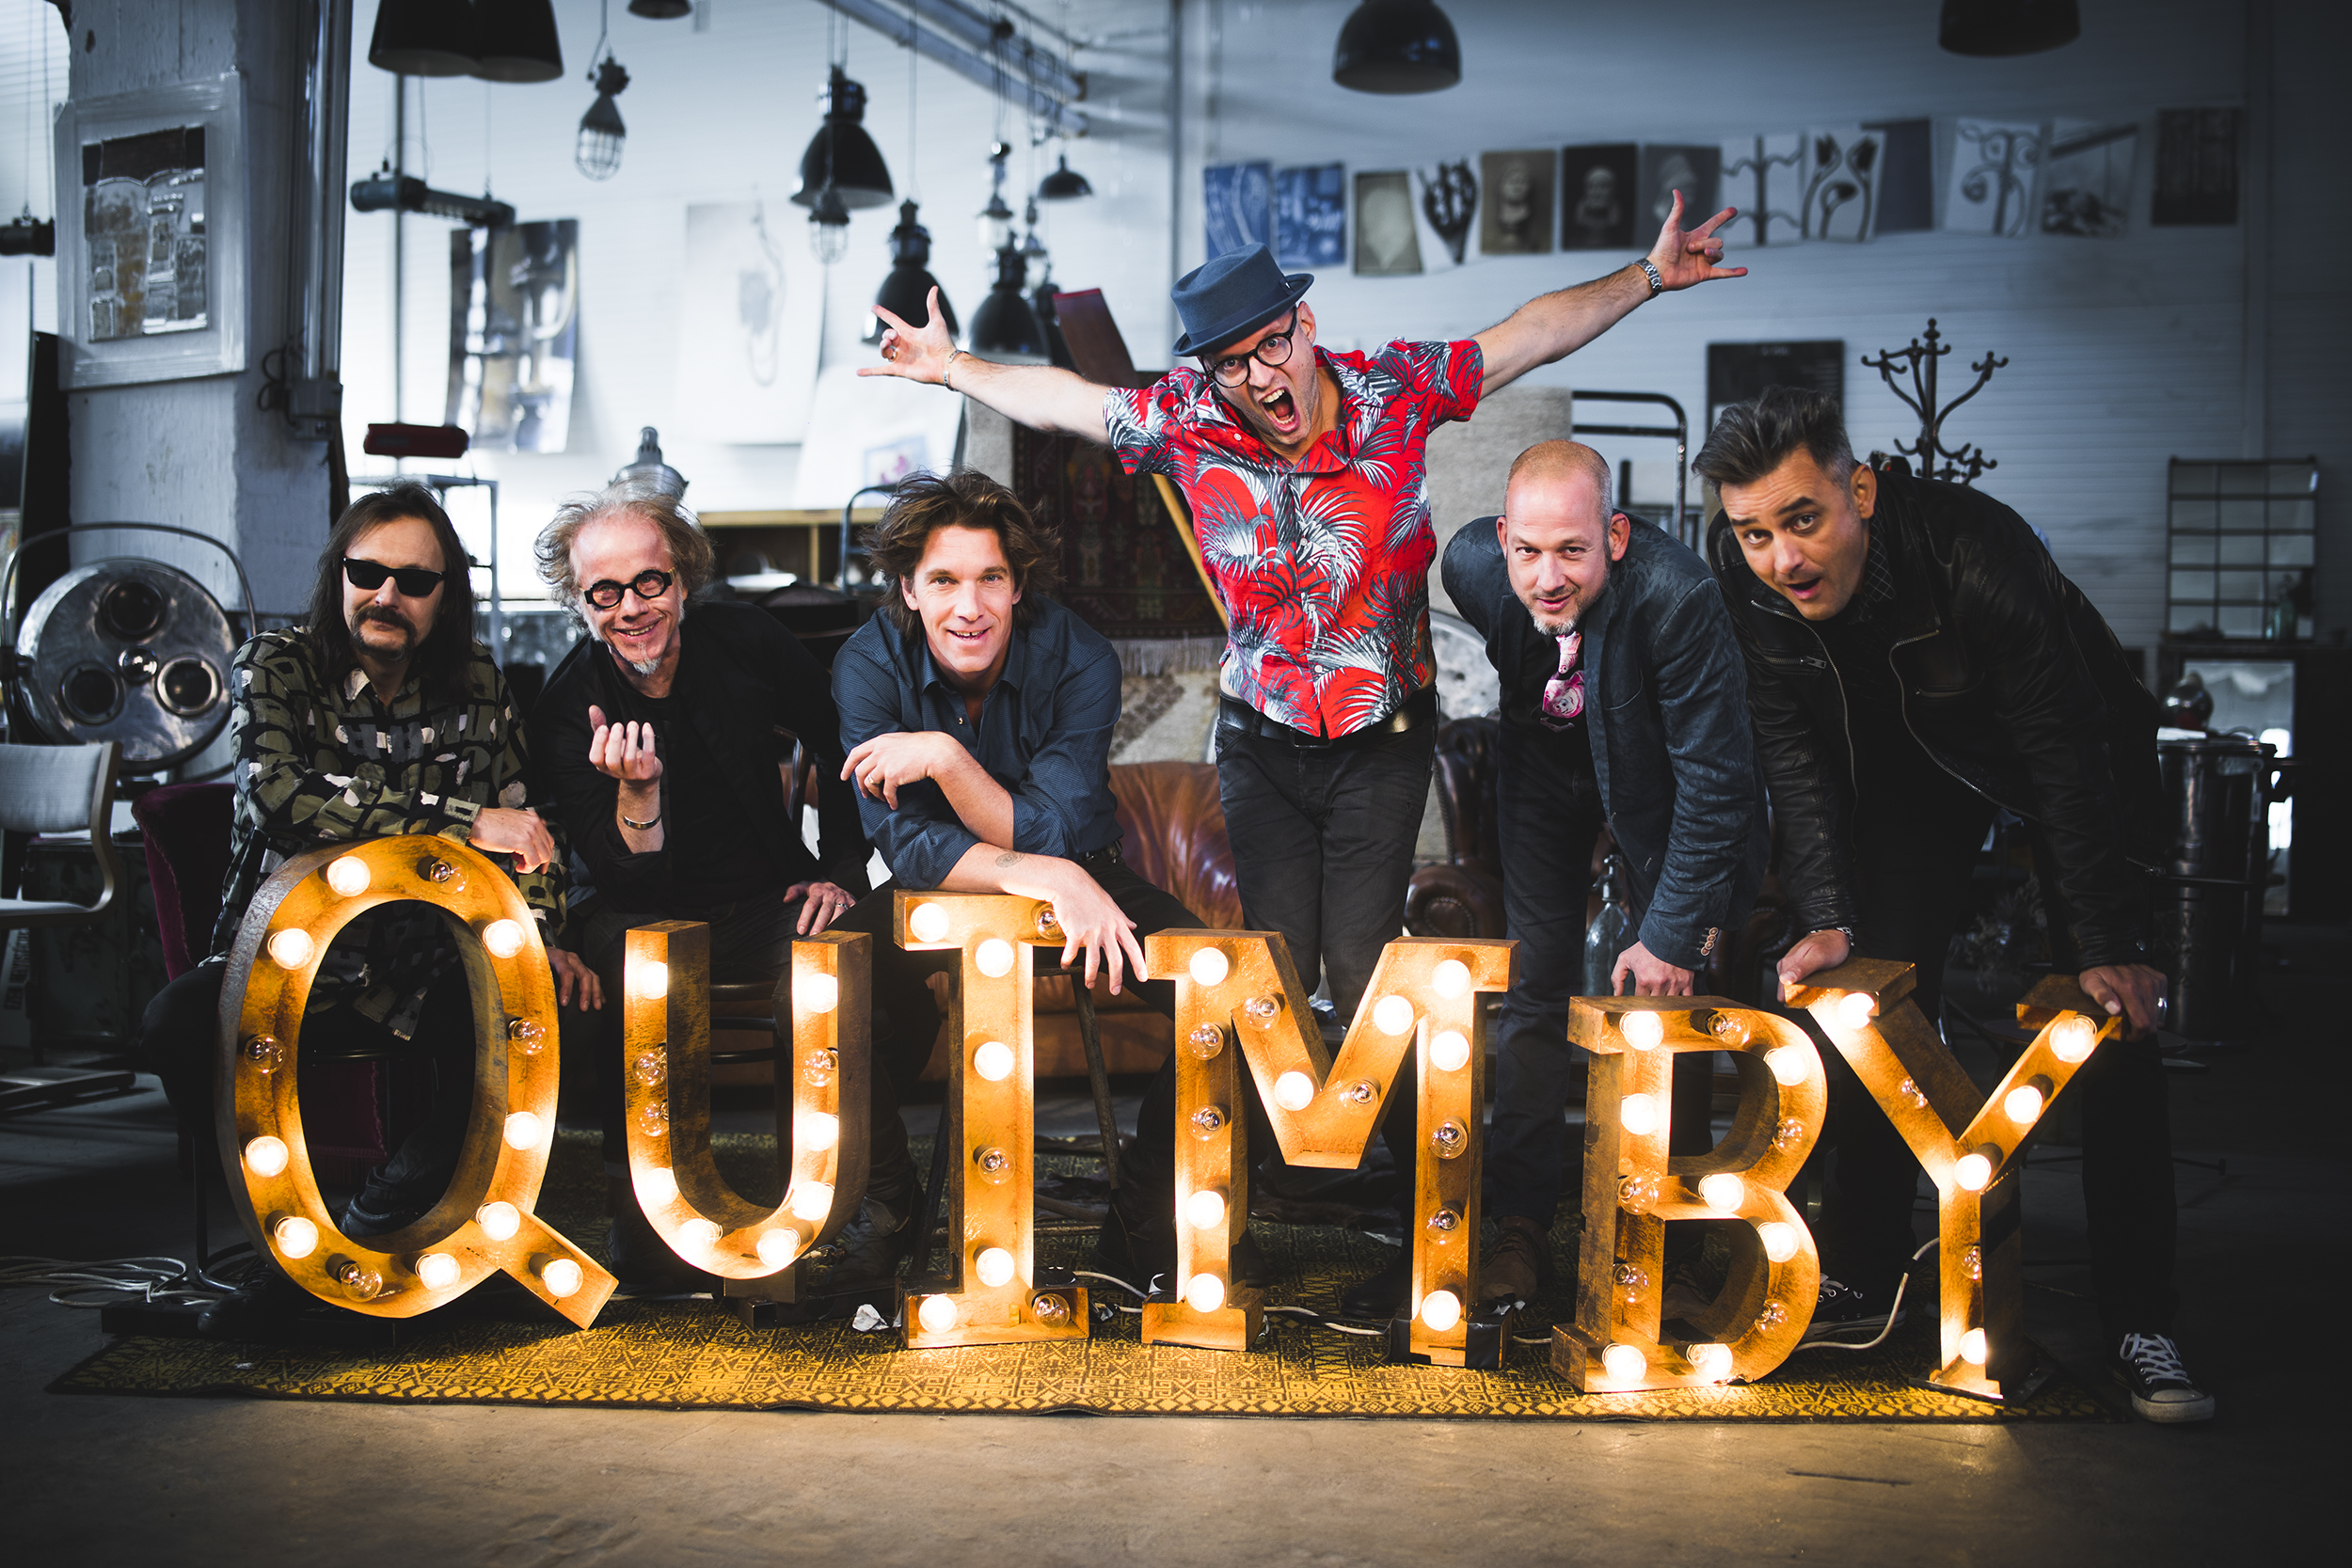 quimby_2017_2_by_sinco.jpg